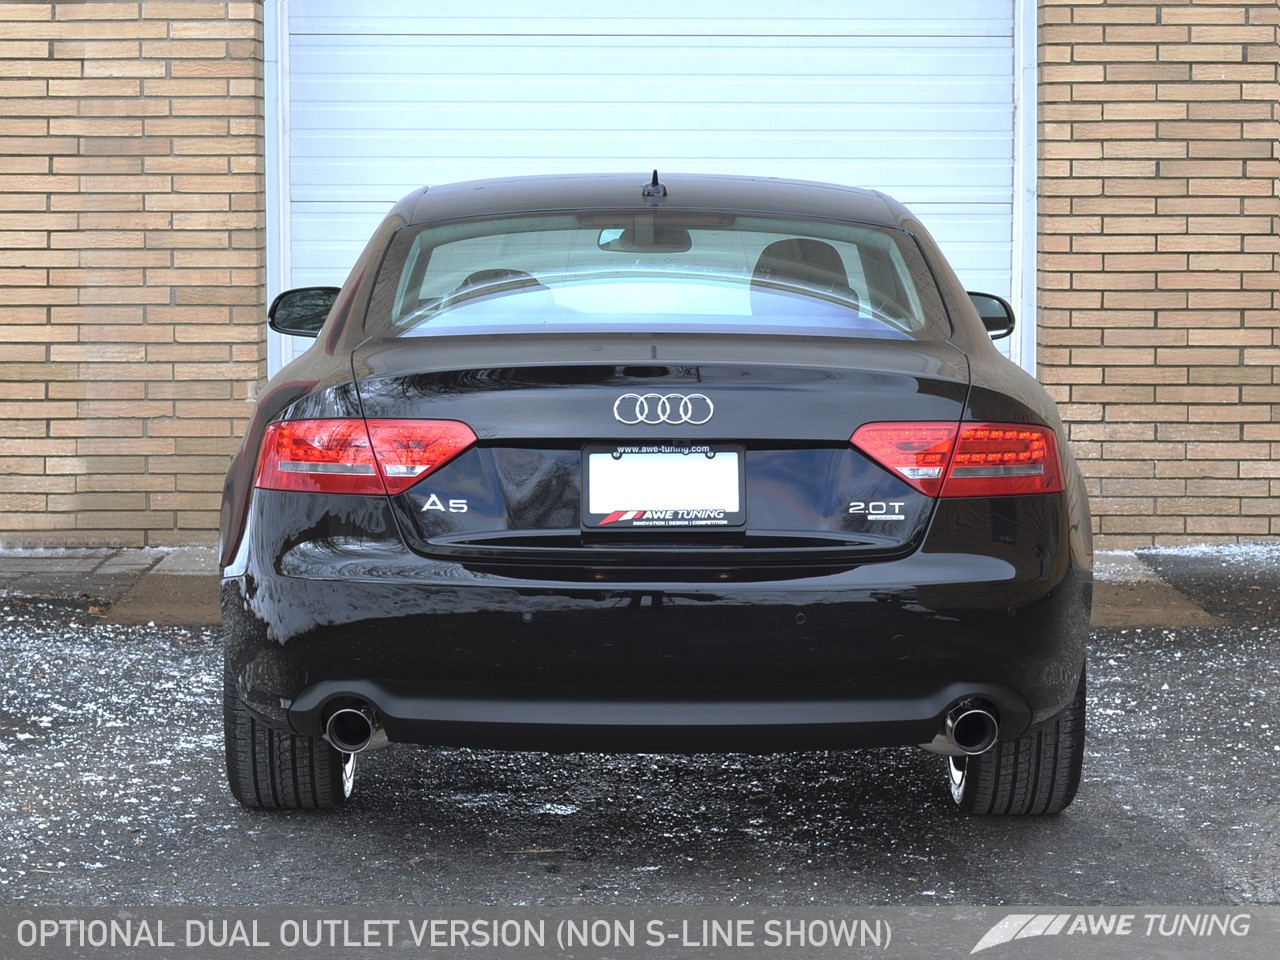 Awe Touring Edition Exhaust Systems For Audi B8 5 A5 2 0t Awe